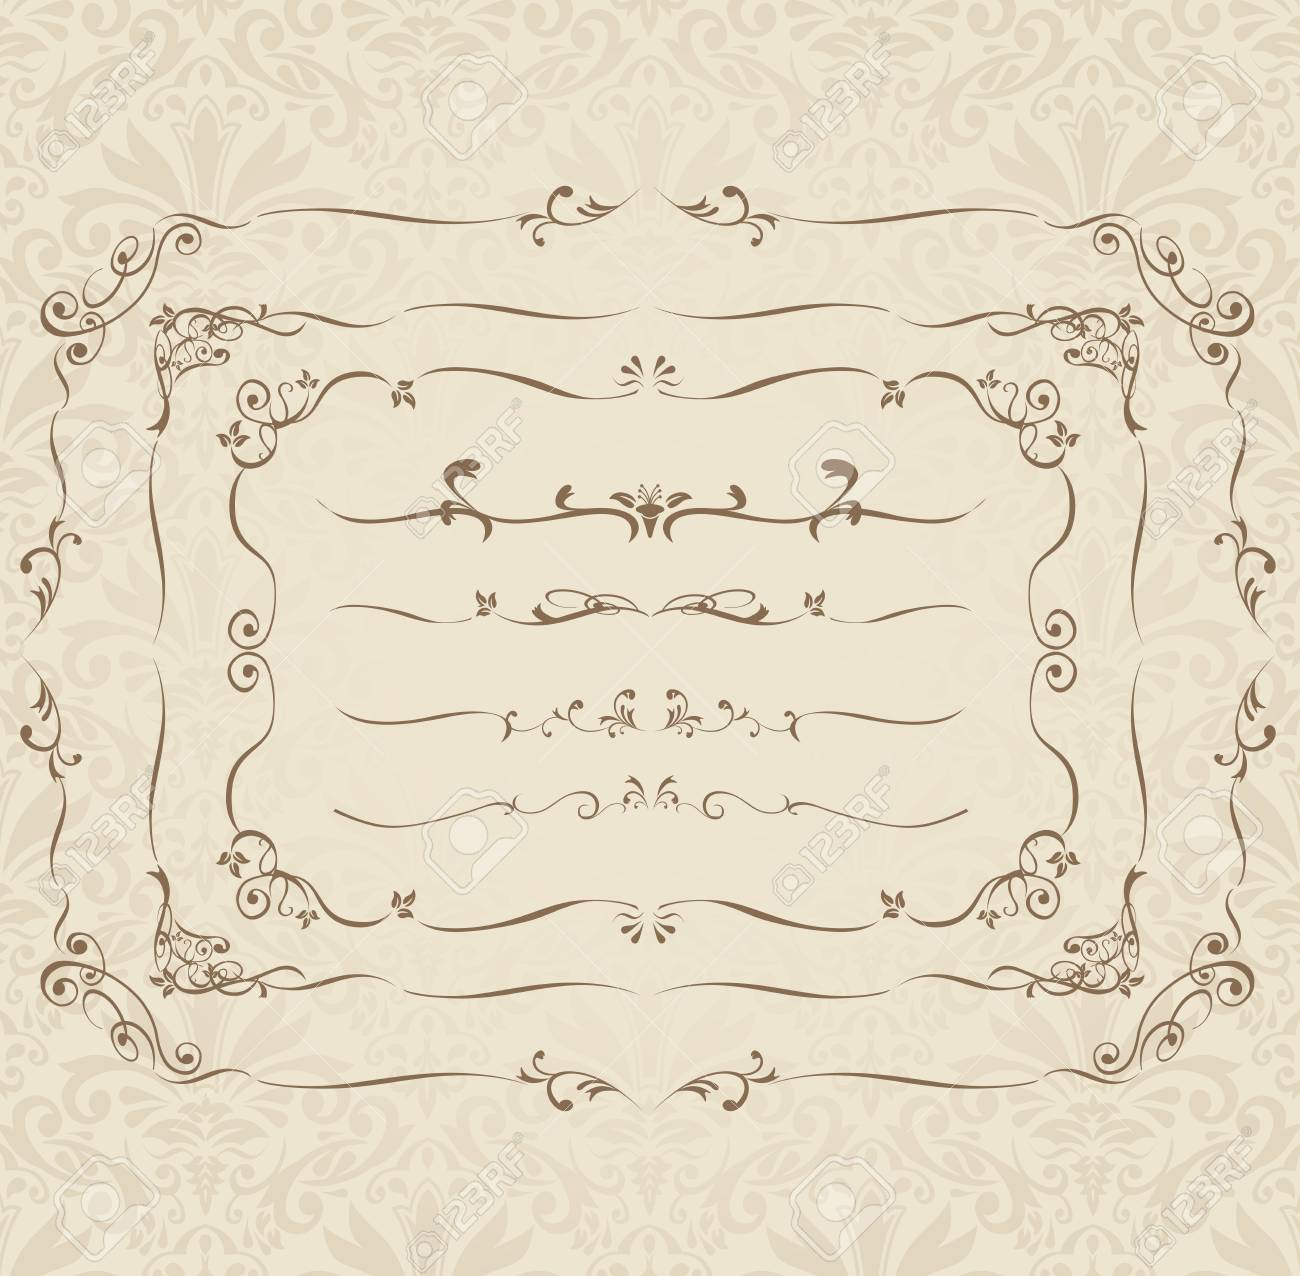 c037b76b278 decorative gold frame set Vector Stock Vector - 48606223